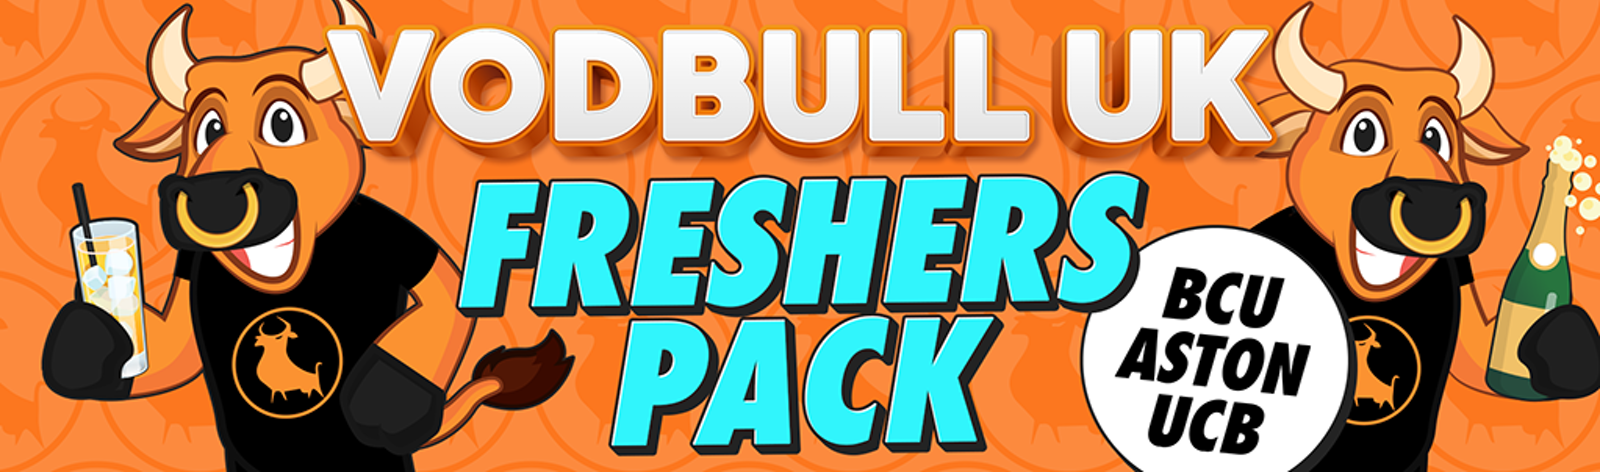 Vodbull UK Freshers Pack – BCU/Aston/UCB